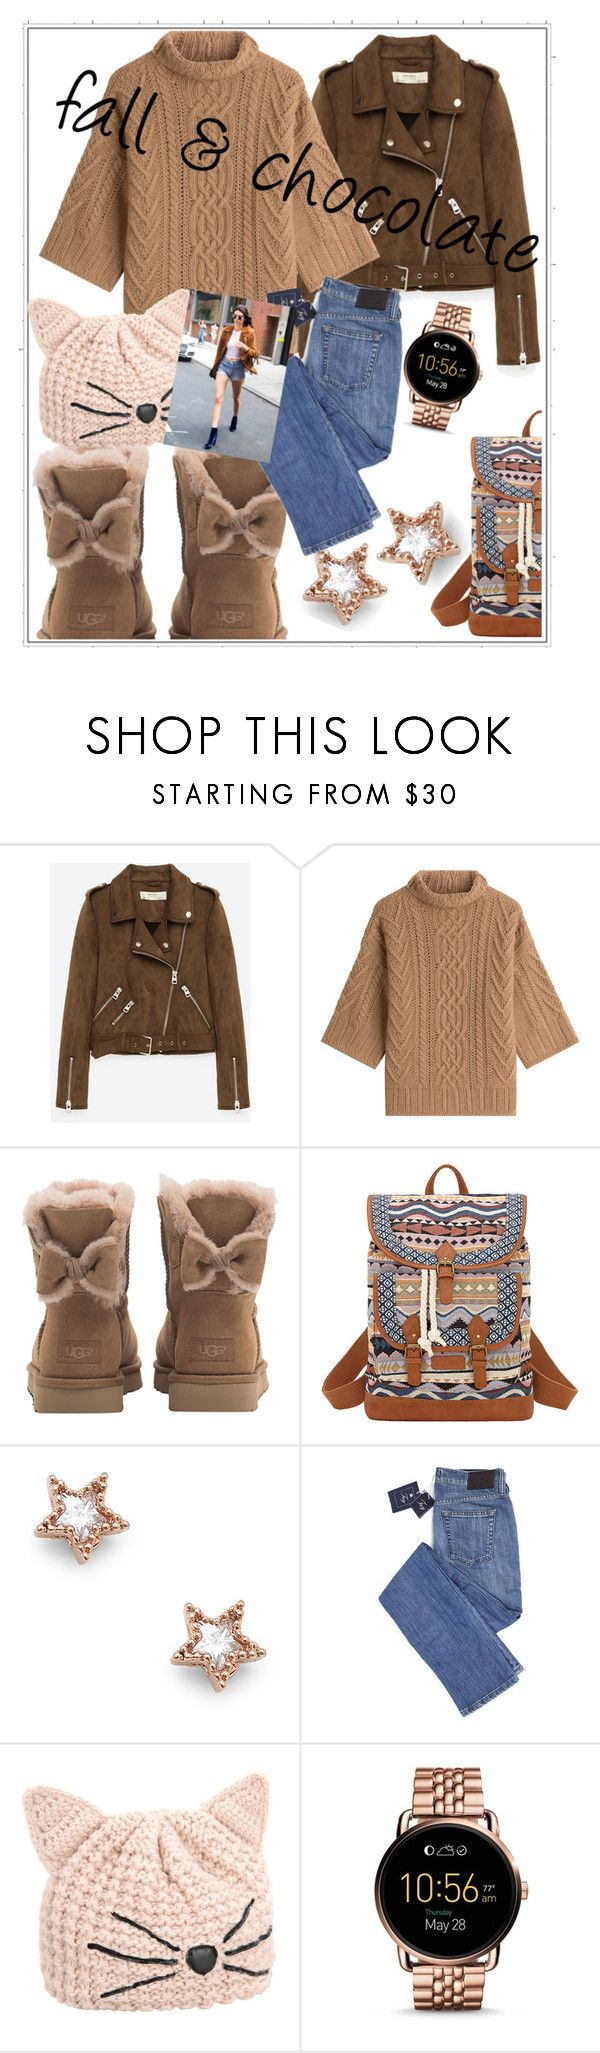 """""""shool day"""" by frupapp on Polyvore featuring Freebird, MaxMara, UGG, Bandana, Sole Society, Karl Lagerfeld, FOSSIL, StreetStyle, school and Work"""